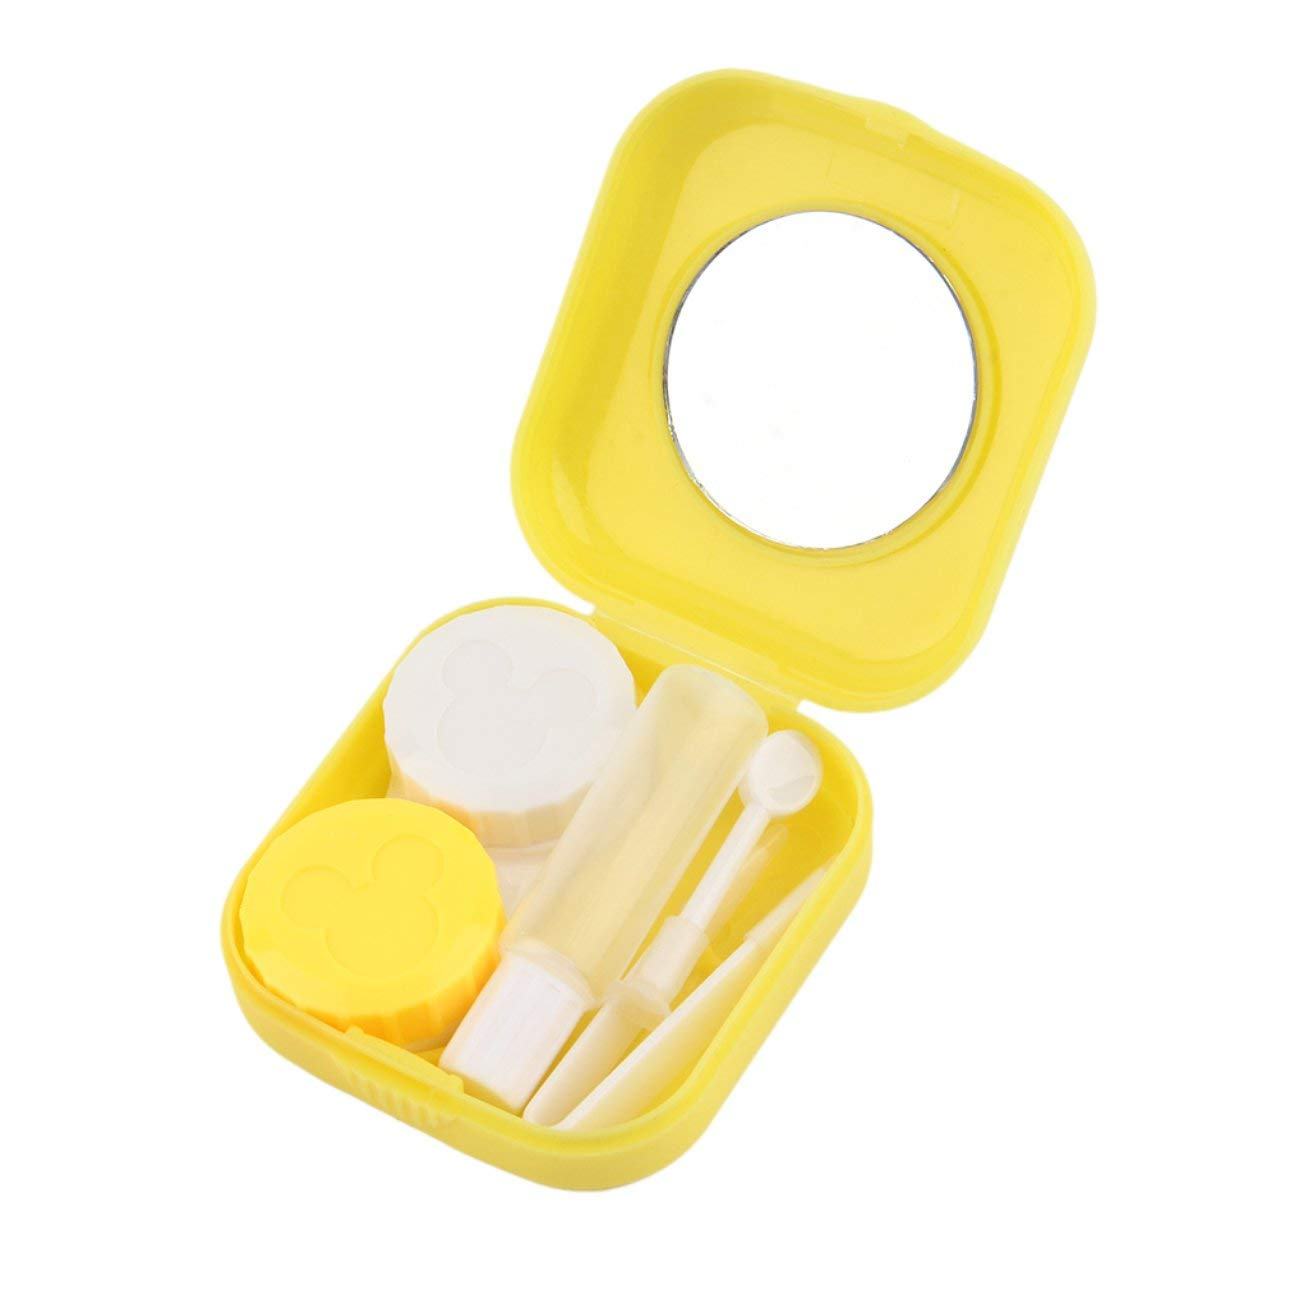 Liobaba Plastic Portable Mini Contact Lens Case Outdoor Travel Contact Lens Holder Container With Mirror Easy Carry For Eyes Care